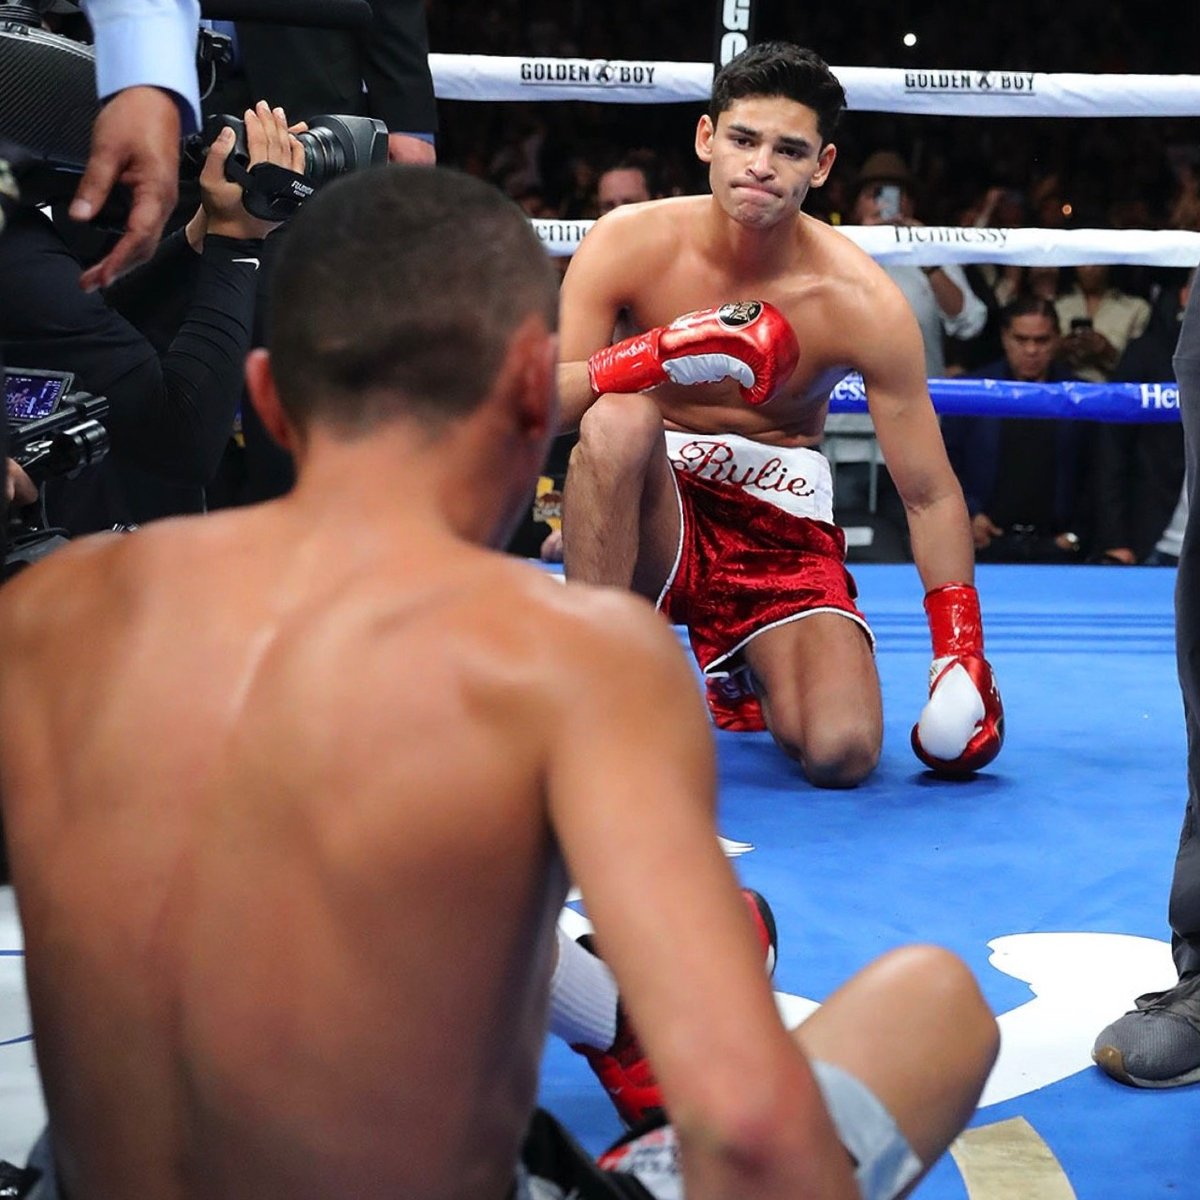 WBC Silver lightweight champion Ryan Garcia (20-0, 17 KOs) destroyed challenger Francisco Fonseca (25-3-2, 19 KOs) by a first round knockout at the Honda Arena in Anaheim. #boxing #wbc #garciafonseca #lightweight